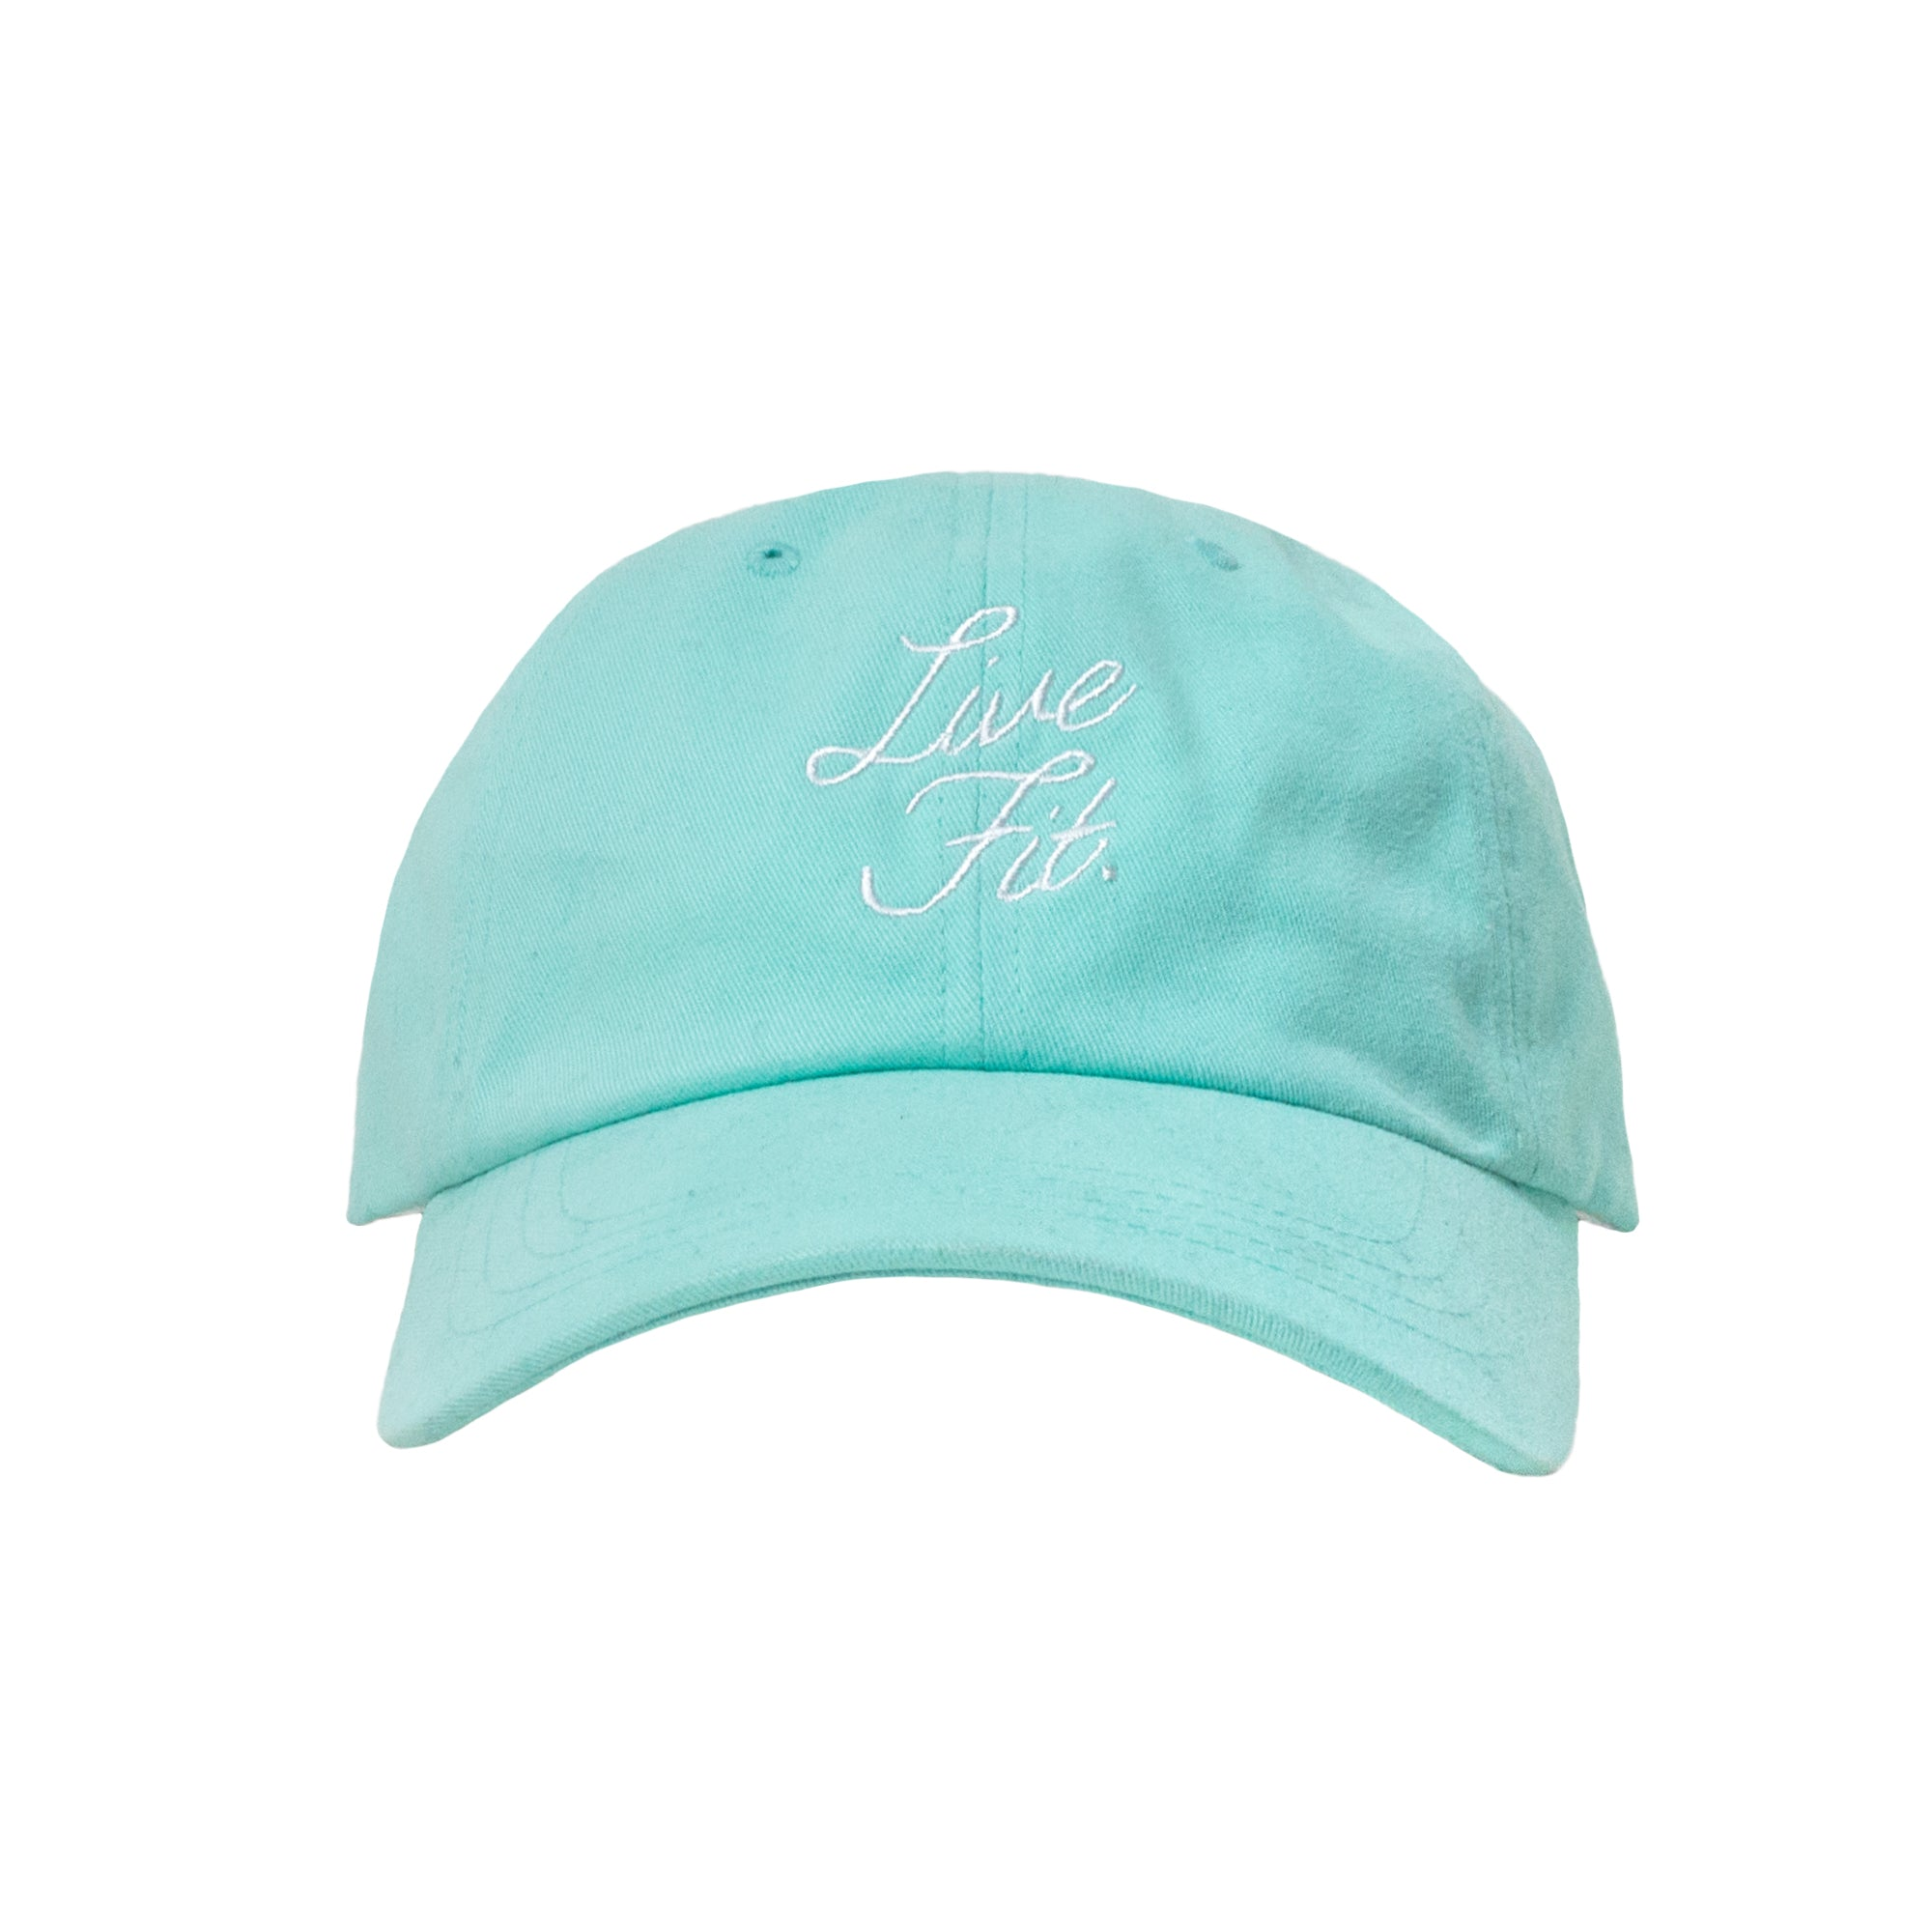 Signature Cap - Diamond Blue